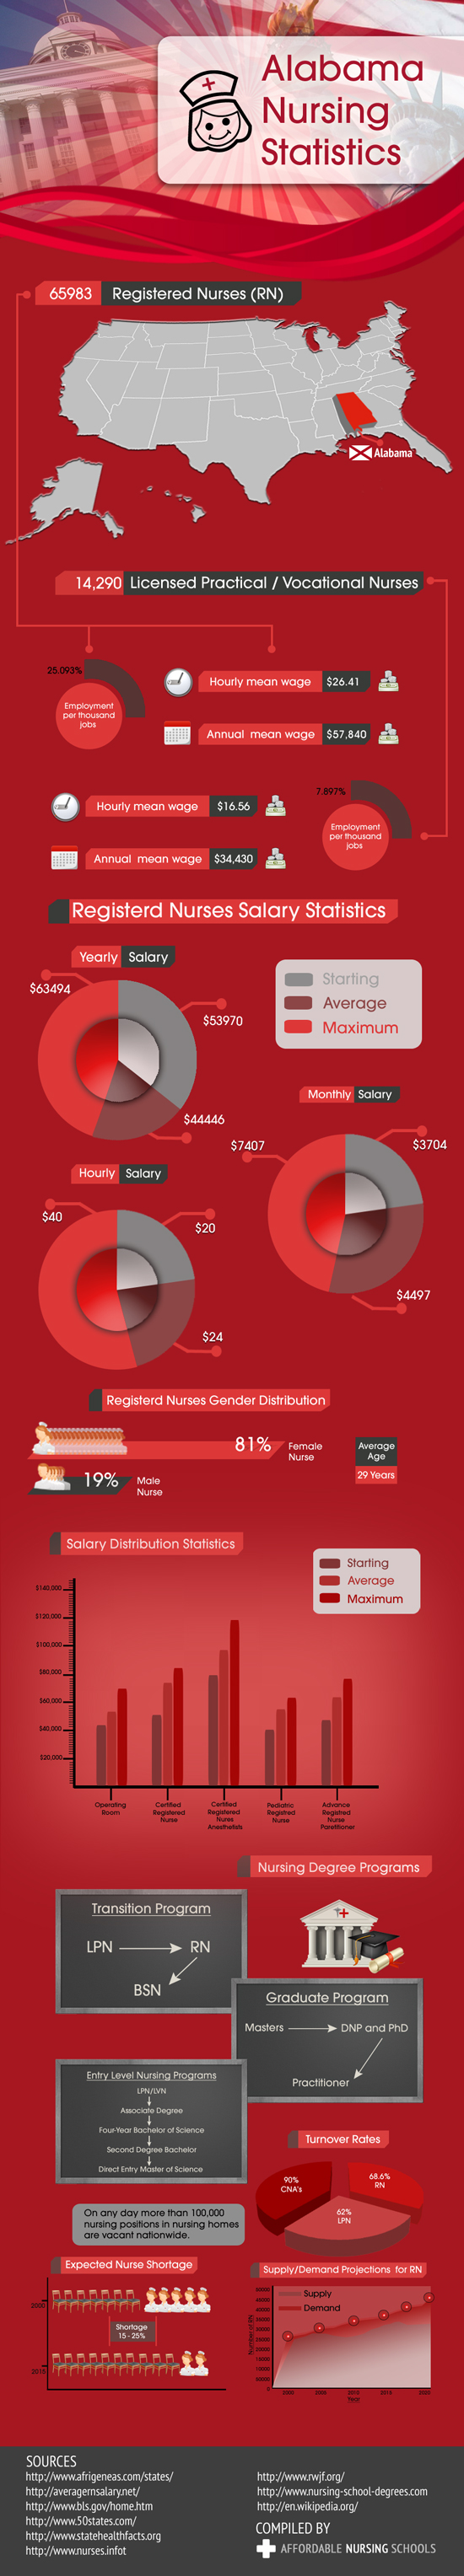 Alabama Nursing Statistics